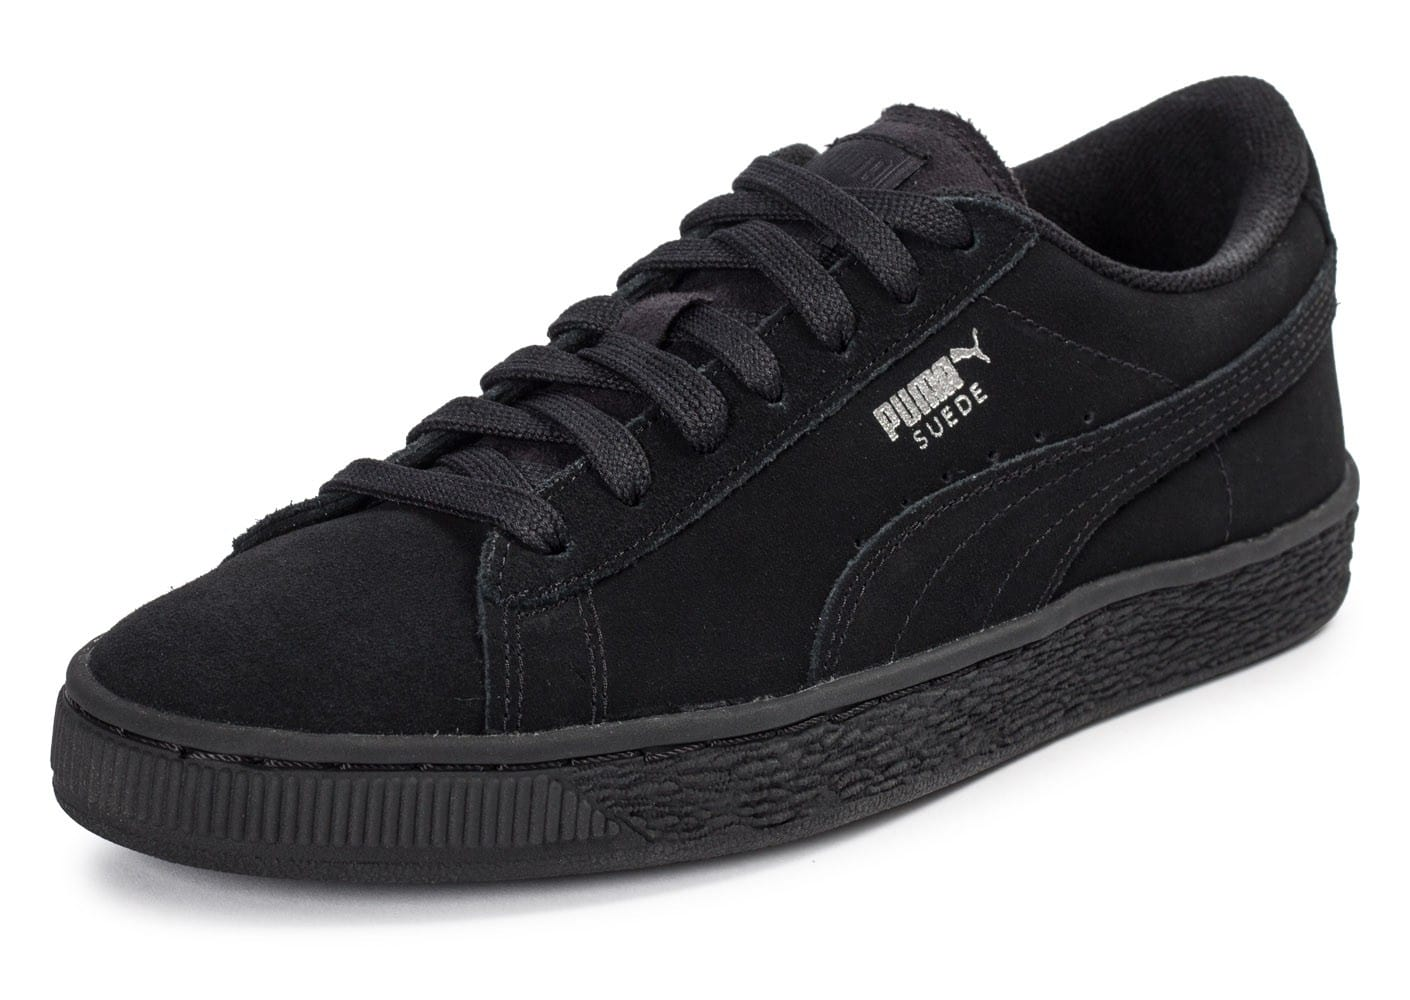 puma suede classic junior noire chaussures 50 sur le 2e article chausport. Black Bedroom Furniture Sets. Home Design Ideas